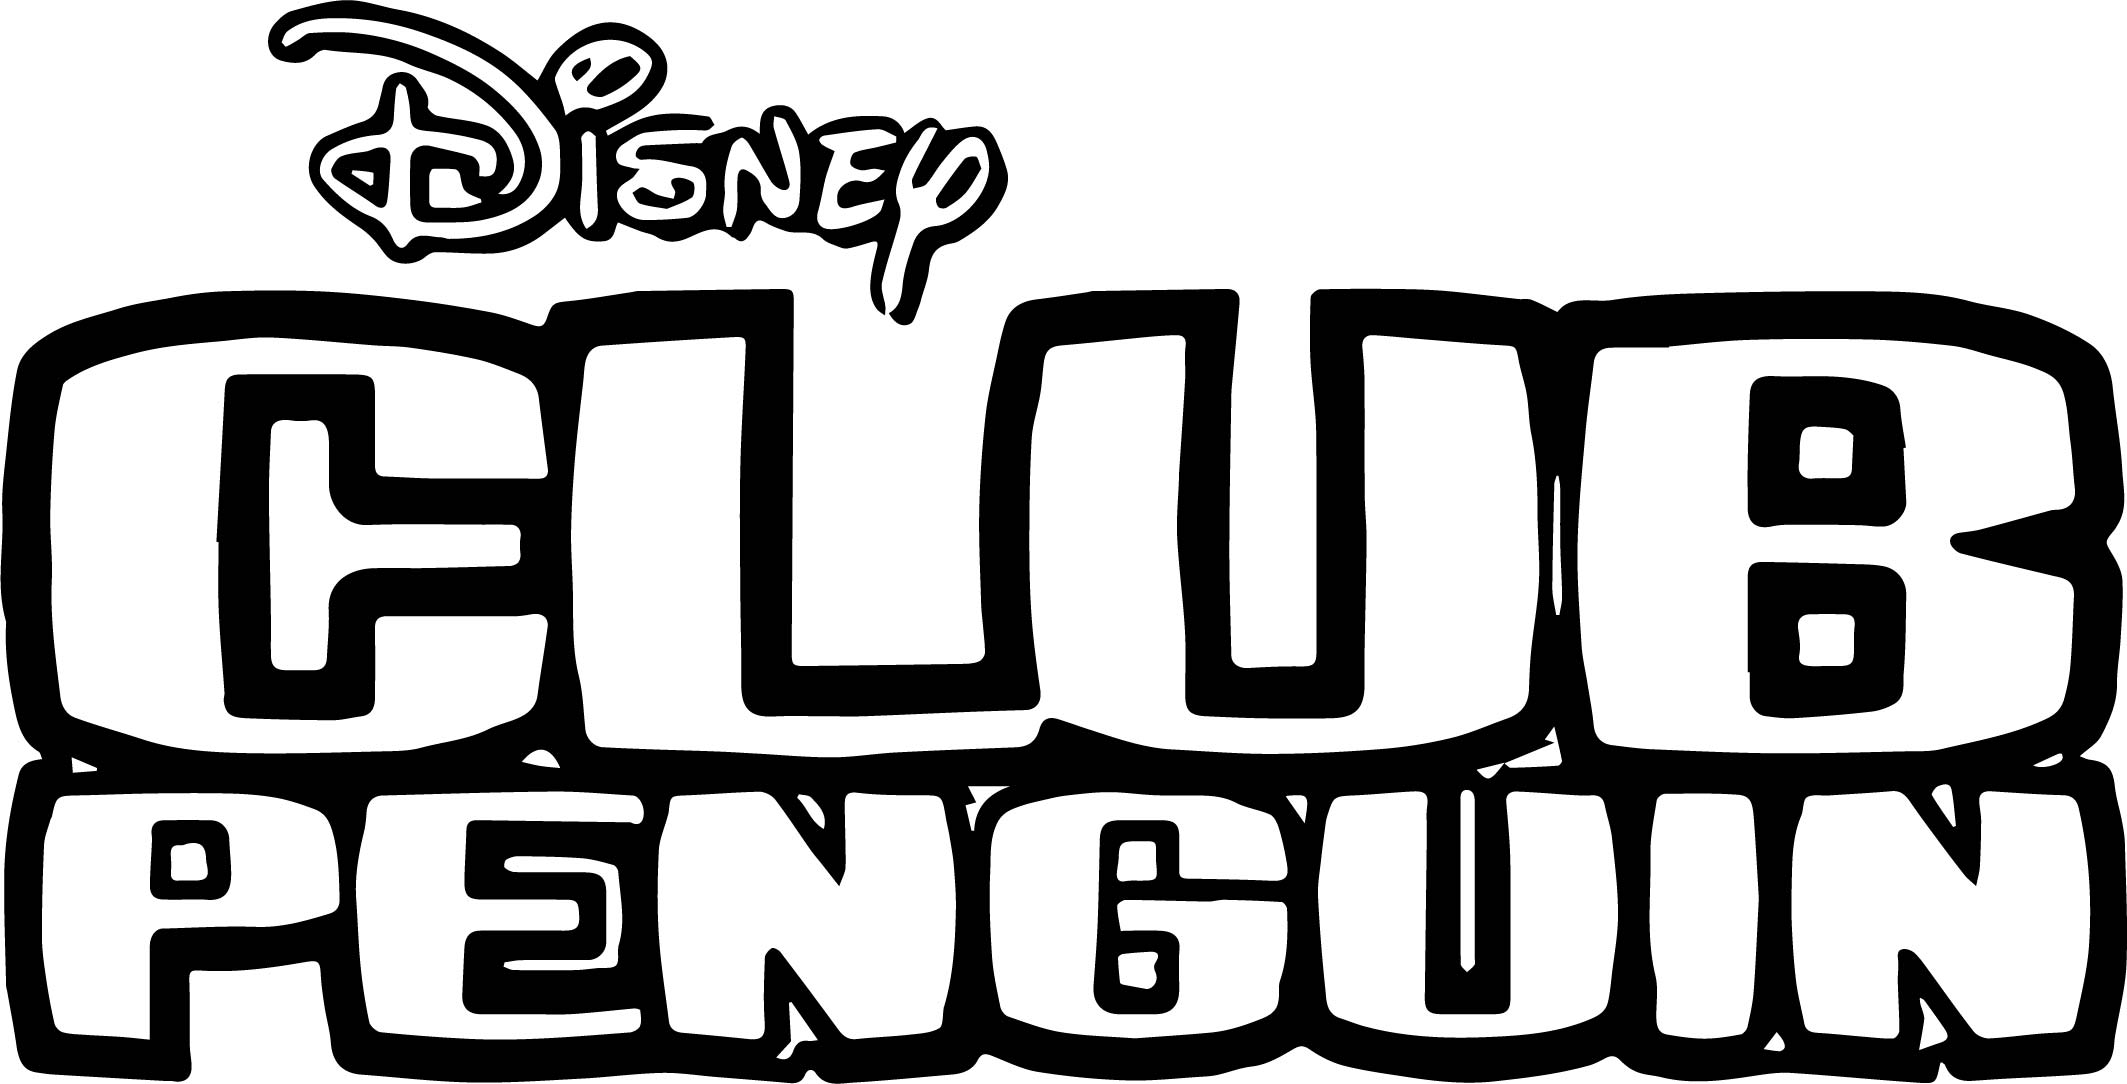 Club Penguin Bold Text Coloring Page